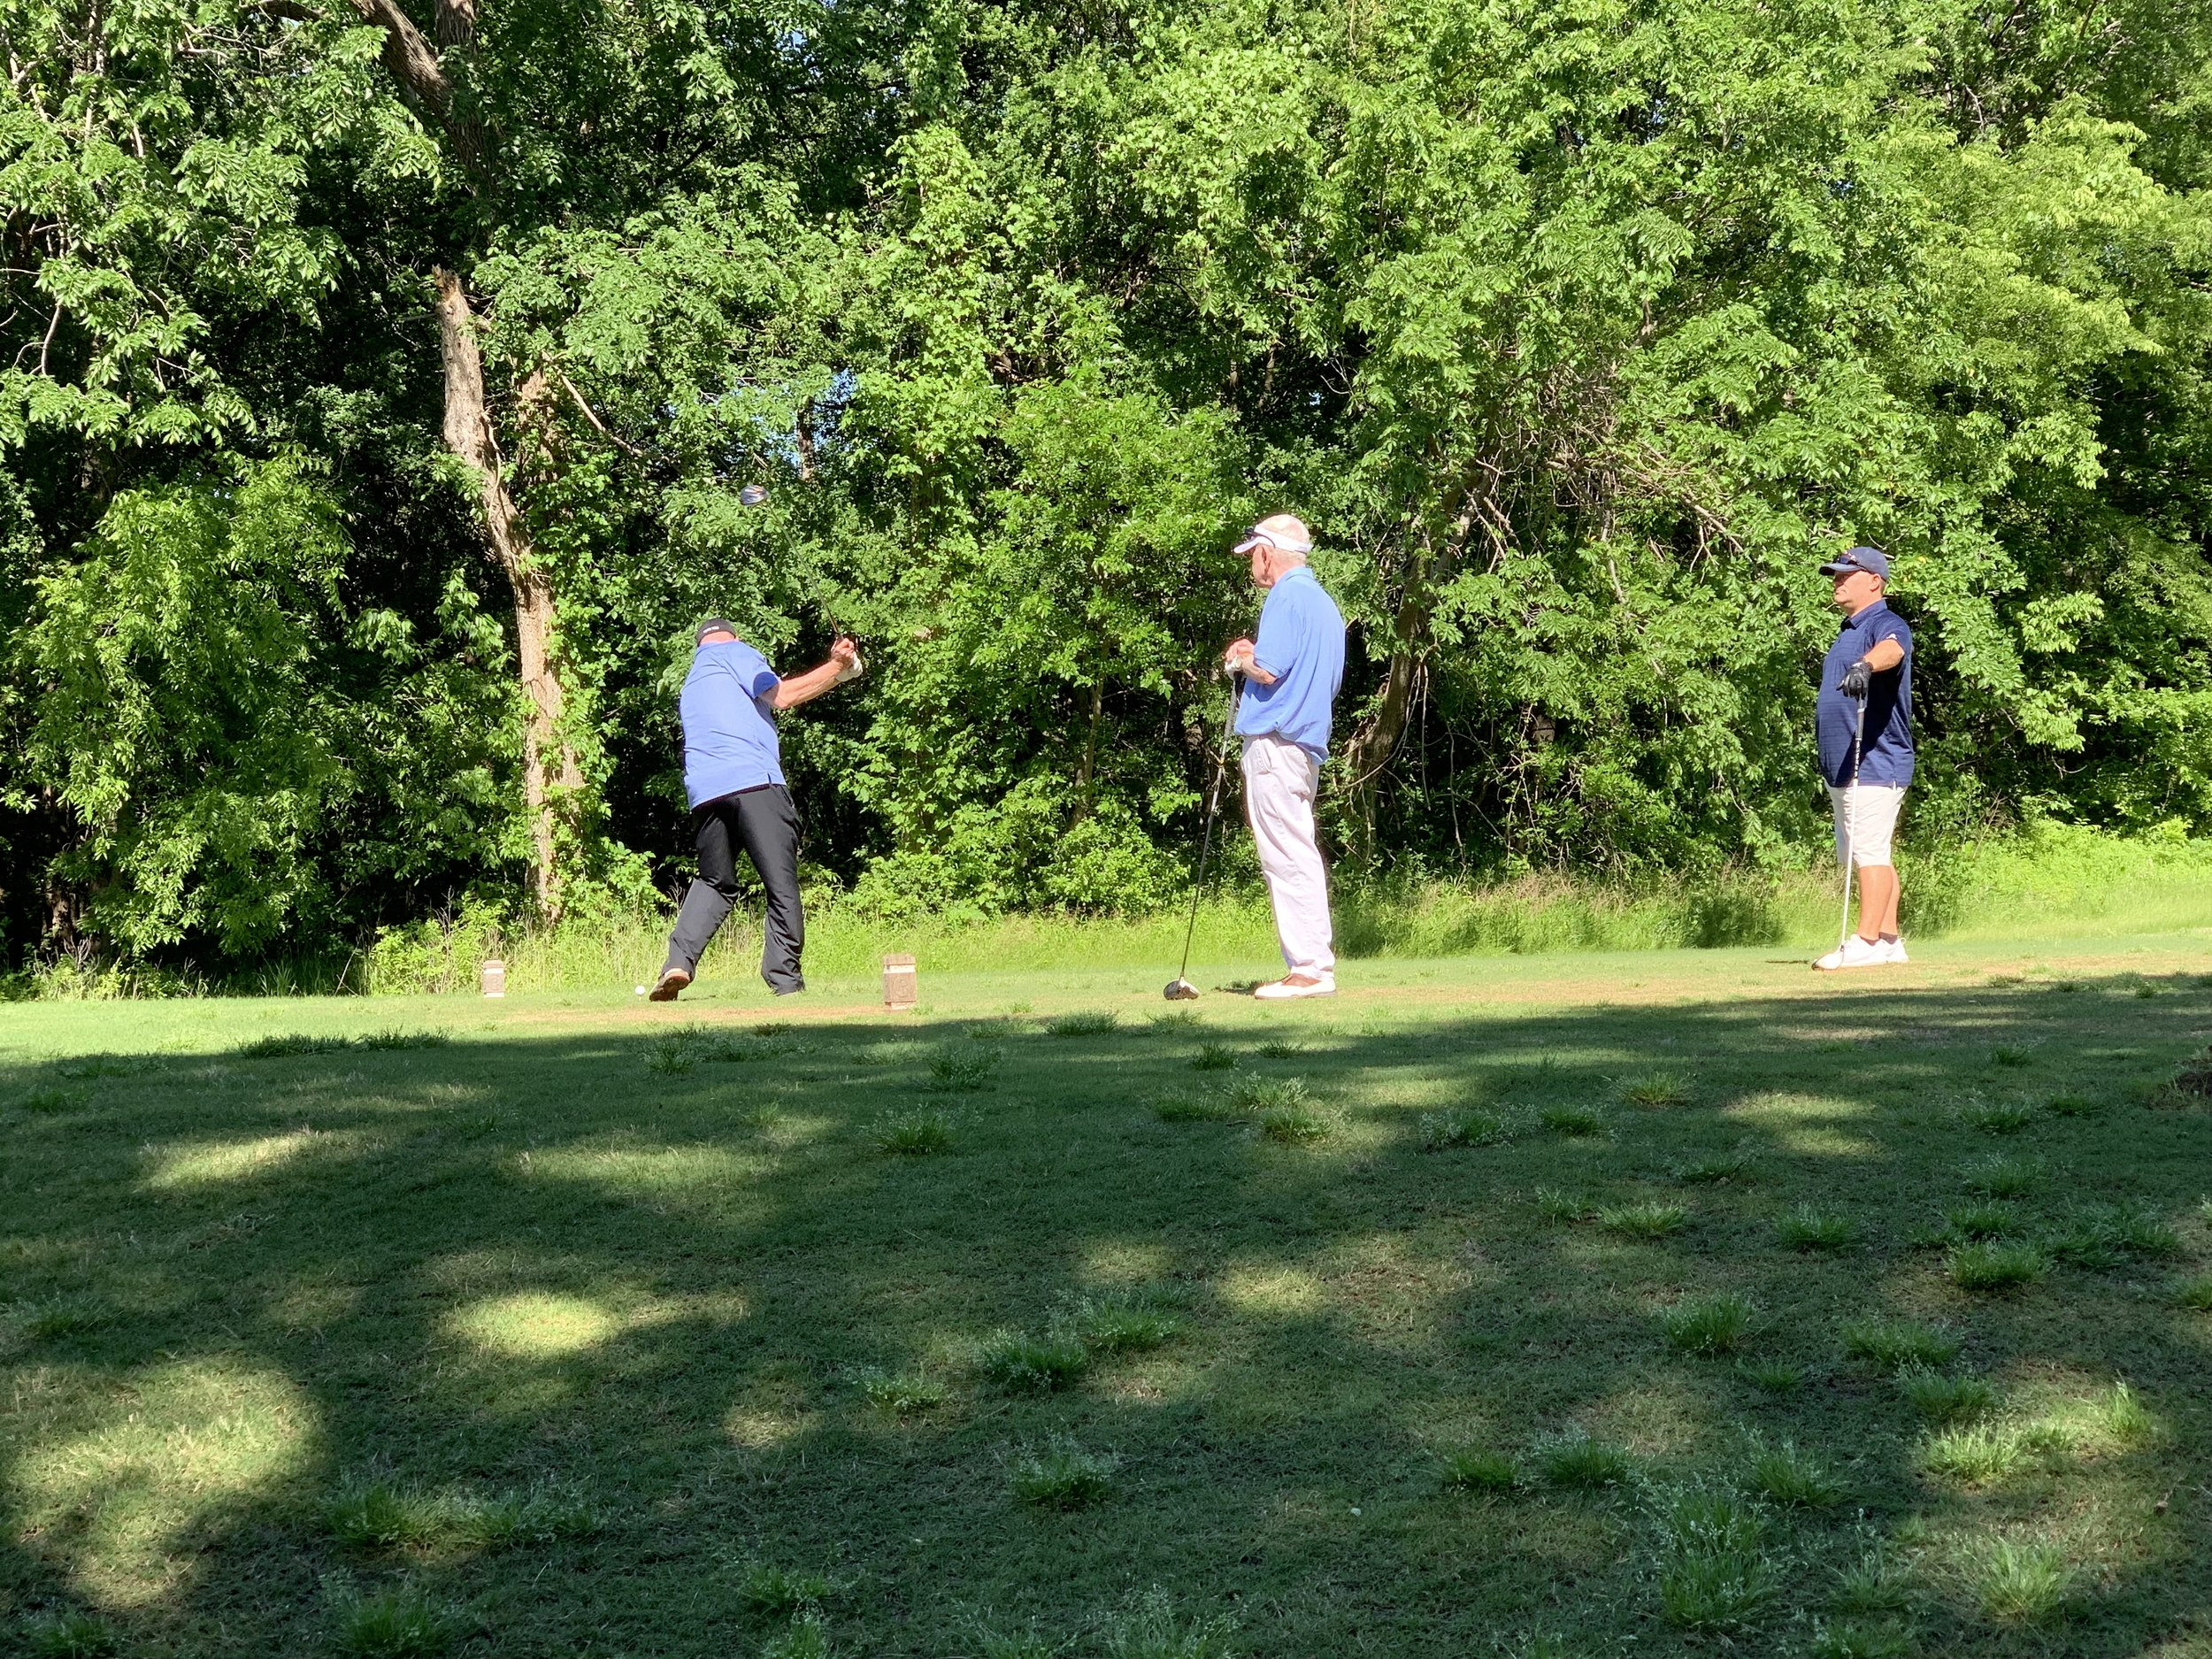 Photo Apr 26, 10 25 26 AM.jpg